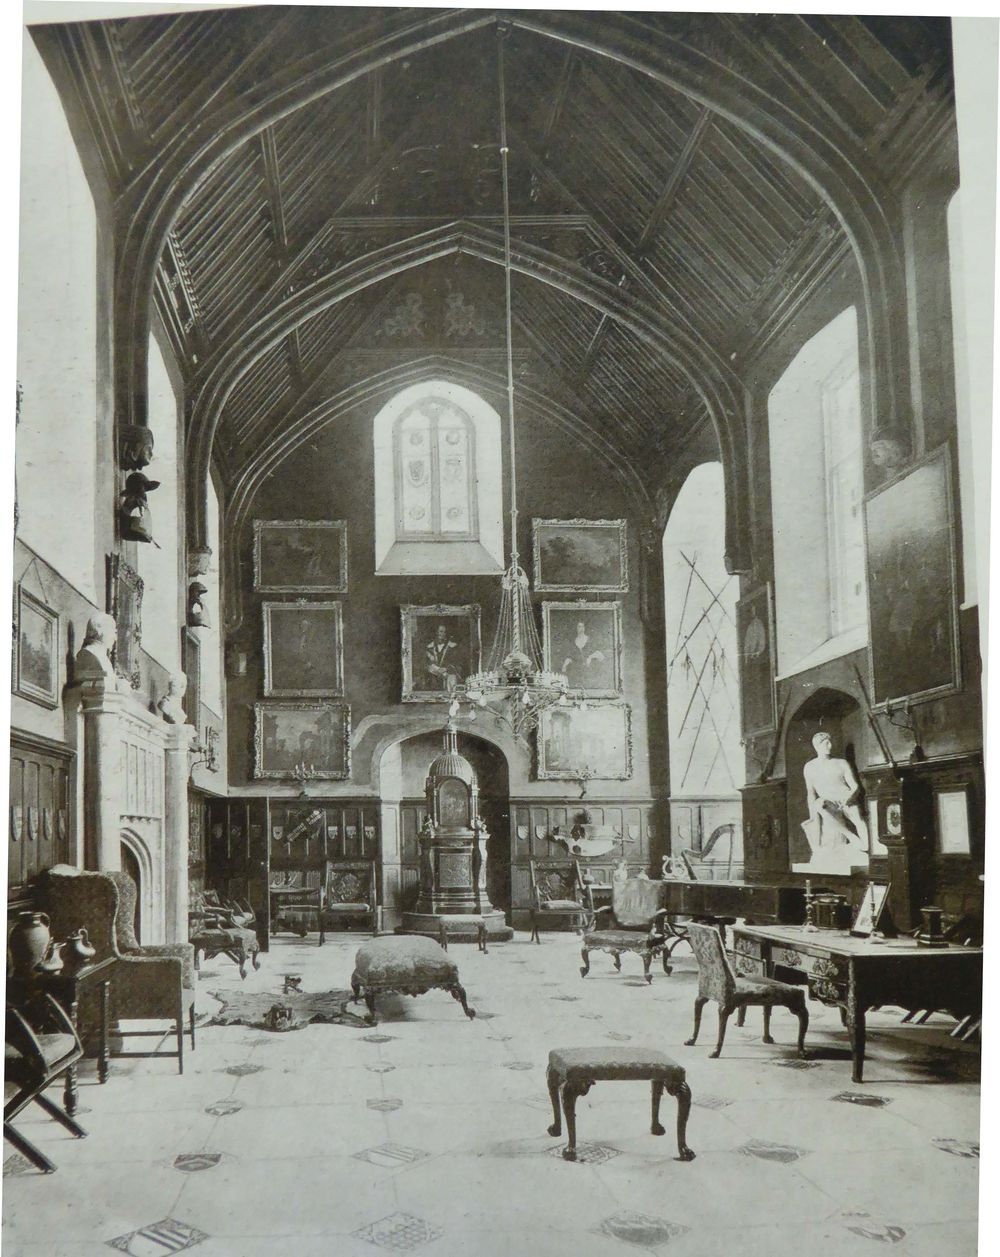 The Great Hall at Horsley Towers - Reproduced by permission of Surrey History Centre